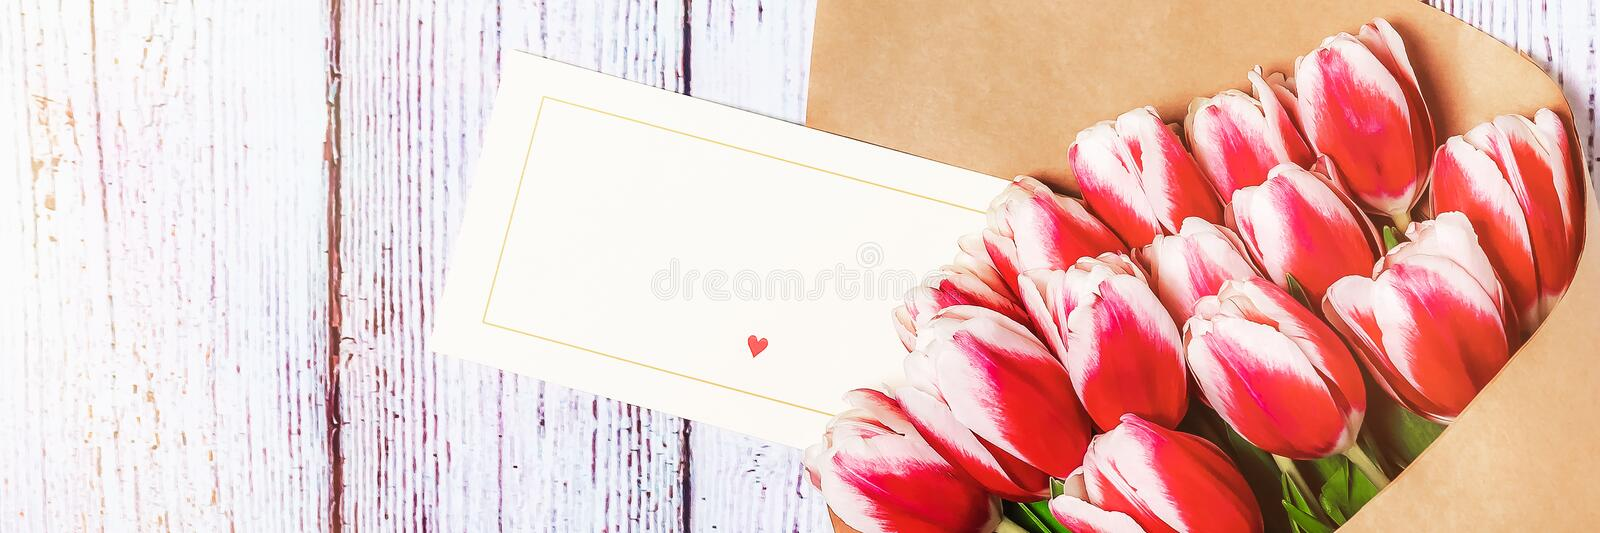 Bouquet of red tulips on the background of old, wooden boards. Place for text.  stock image